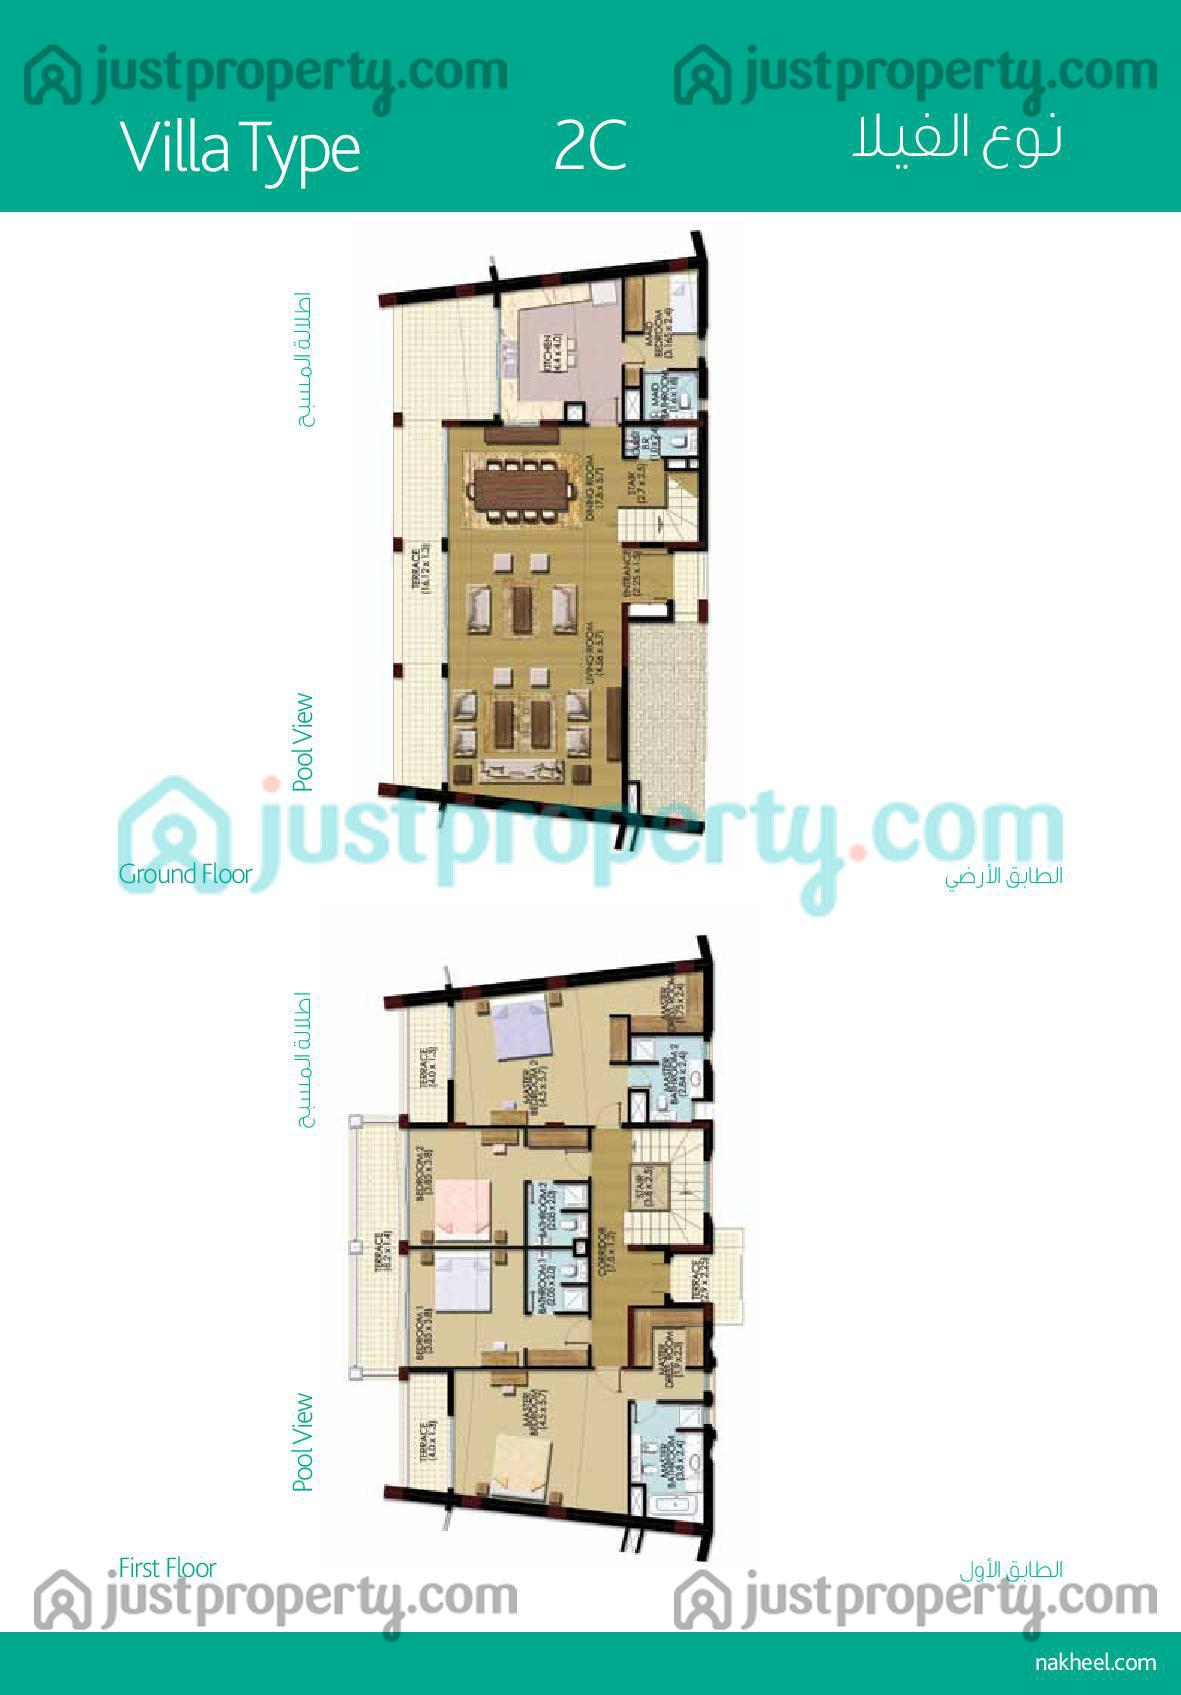 Palma Residences Floor Plans Justproperty Com